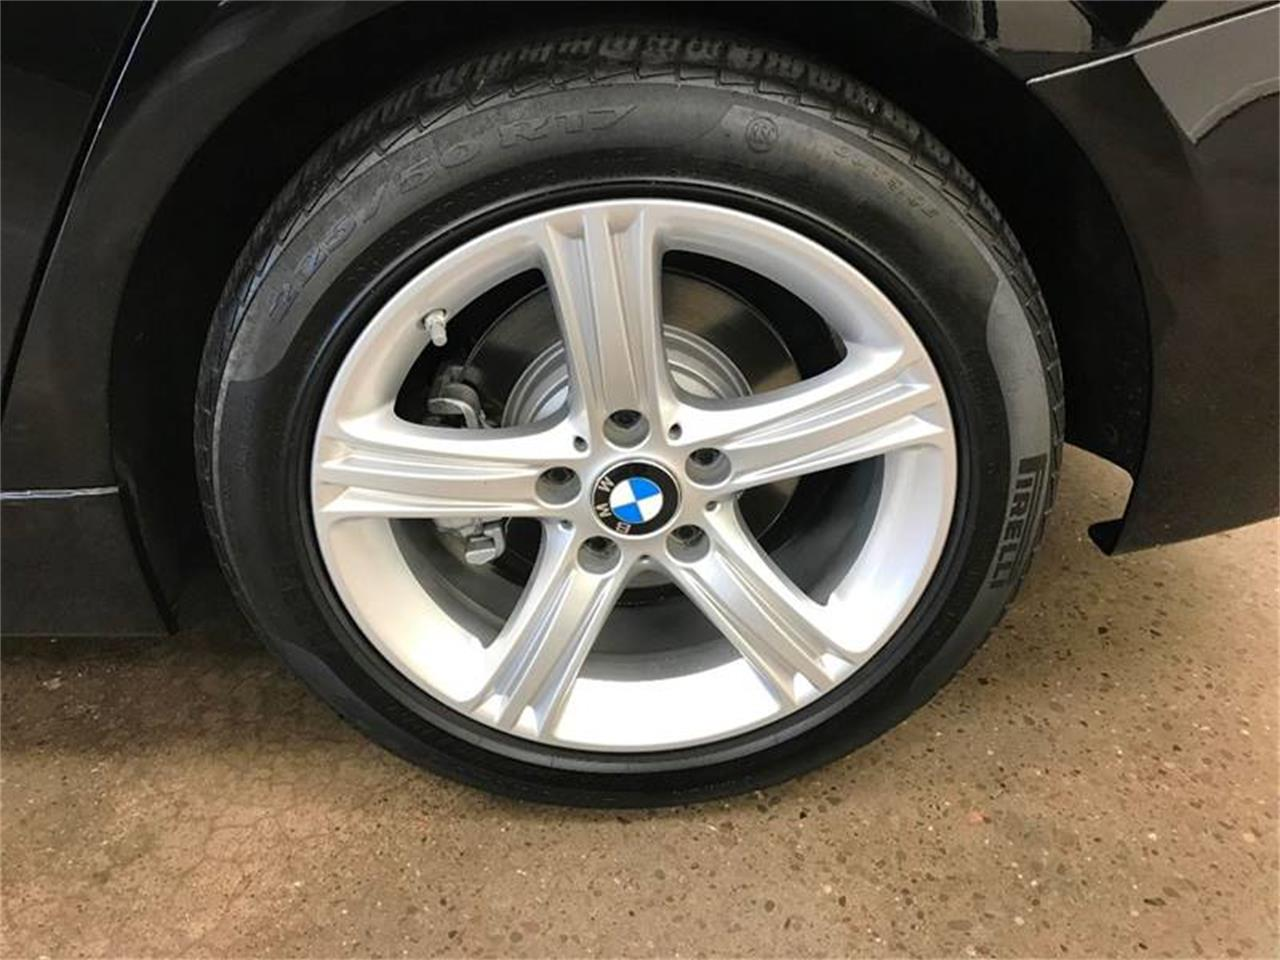 2015 BMW 3 Series (CC-1200249) for sale in Allison Park, Pennsylvania